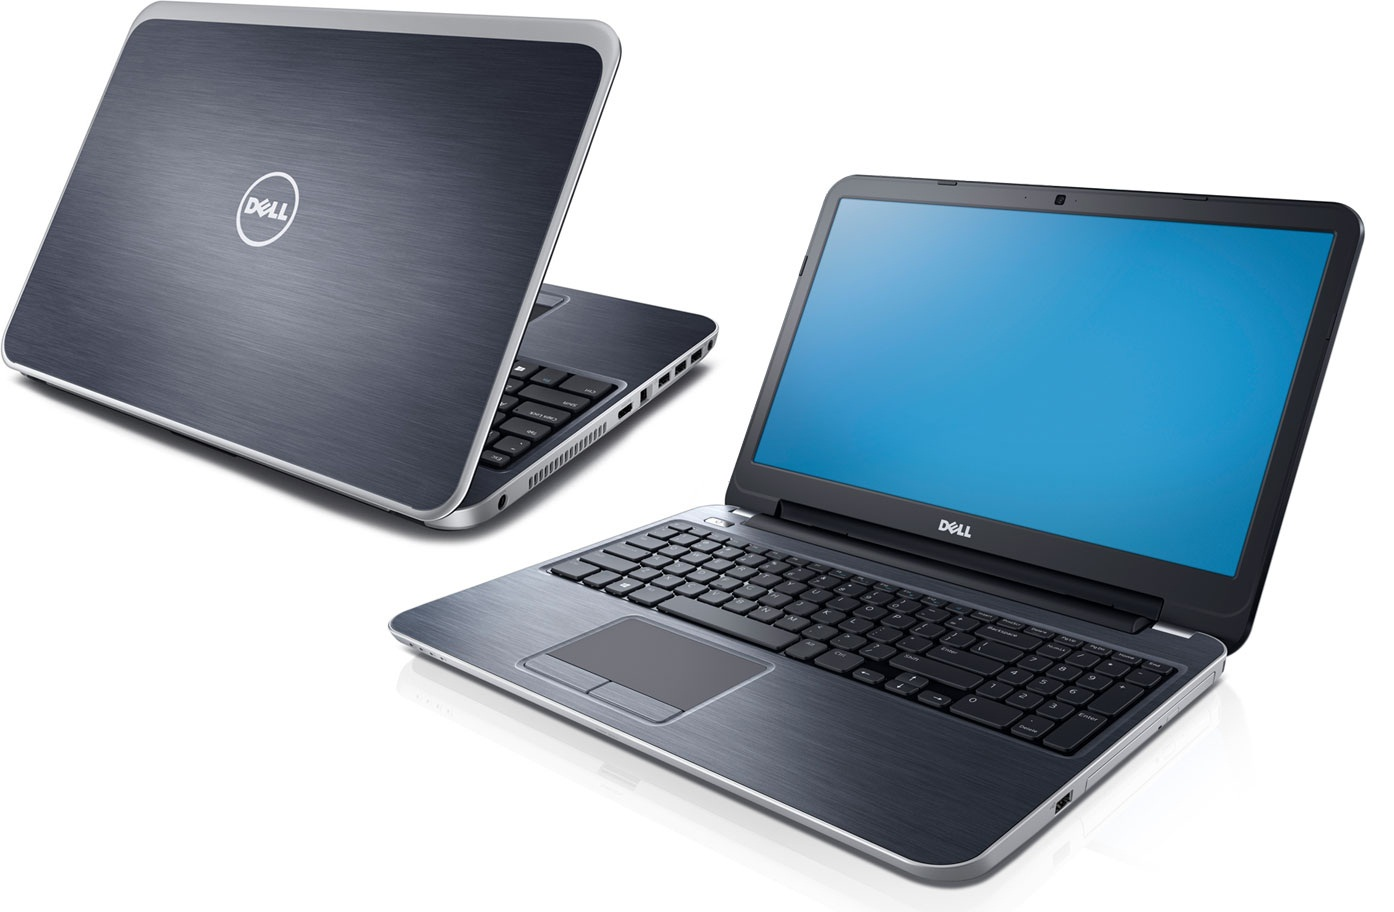 Inspiron 5521 Drivers For Windows 7 32bit  Download Driver LapTop